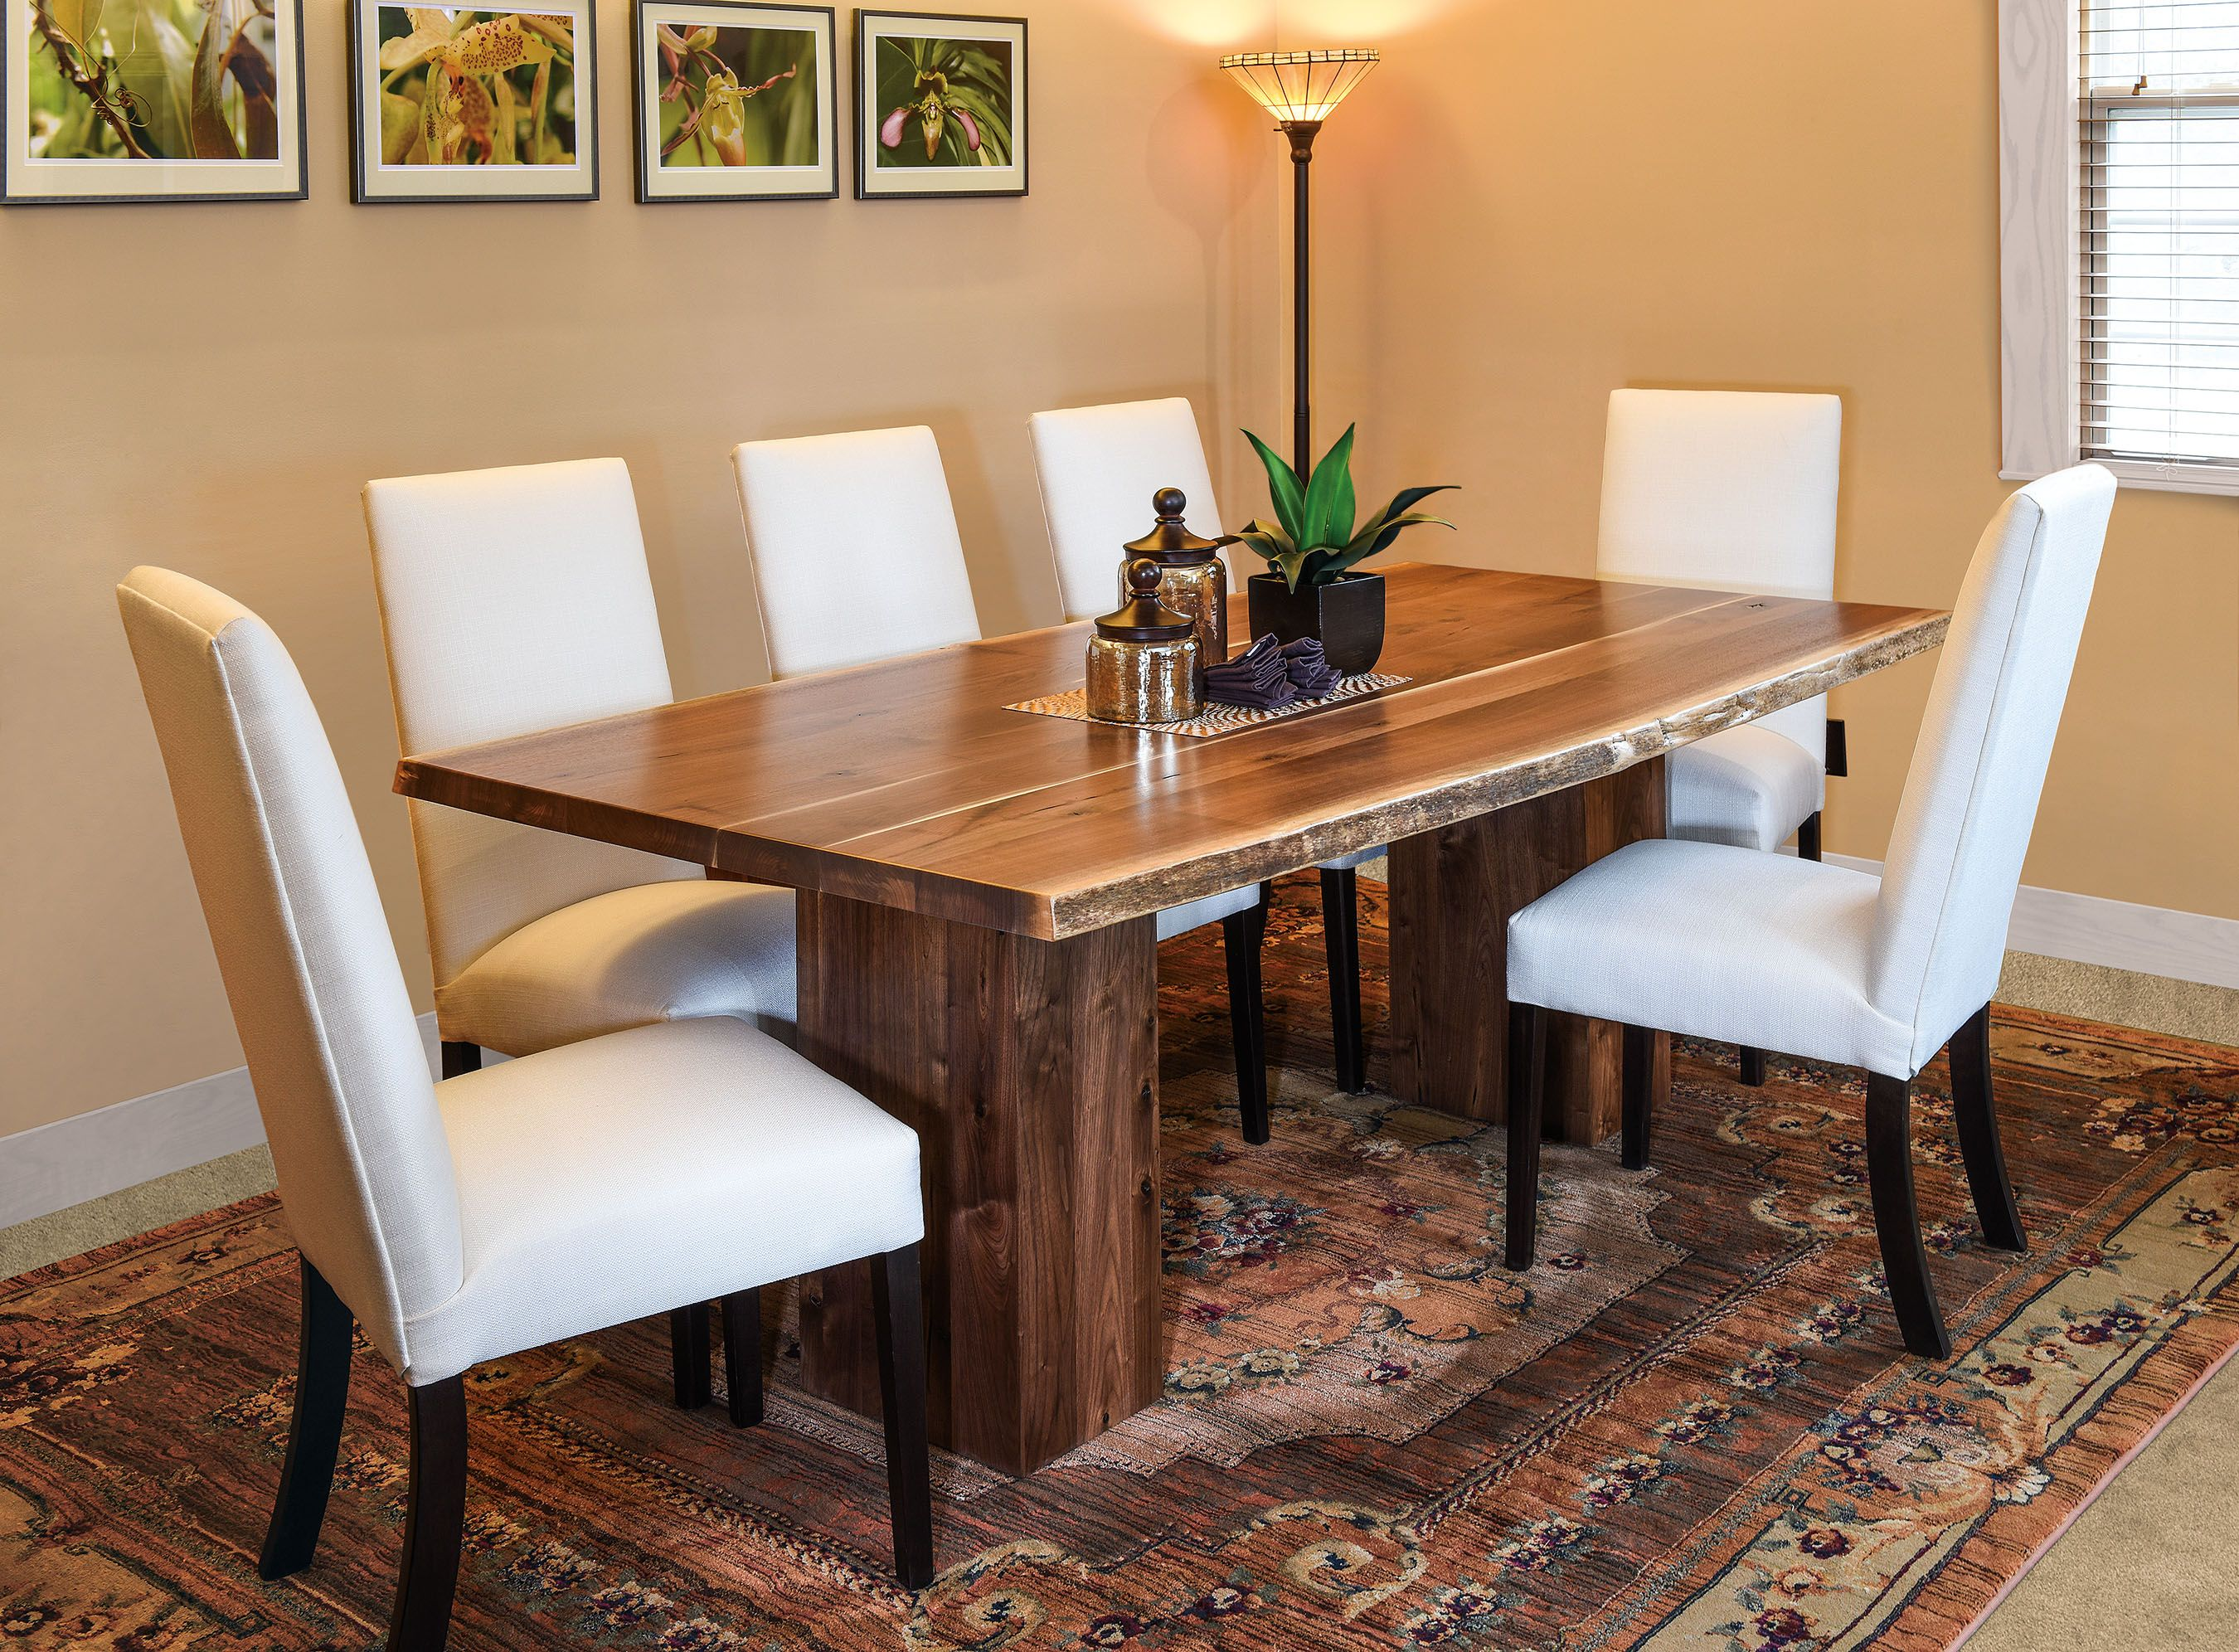 We love live edge tables Can you believe this is Amish furniture